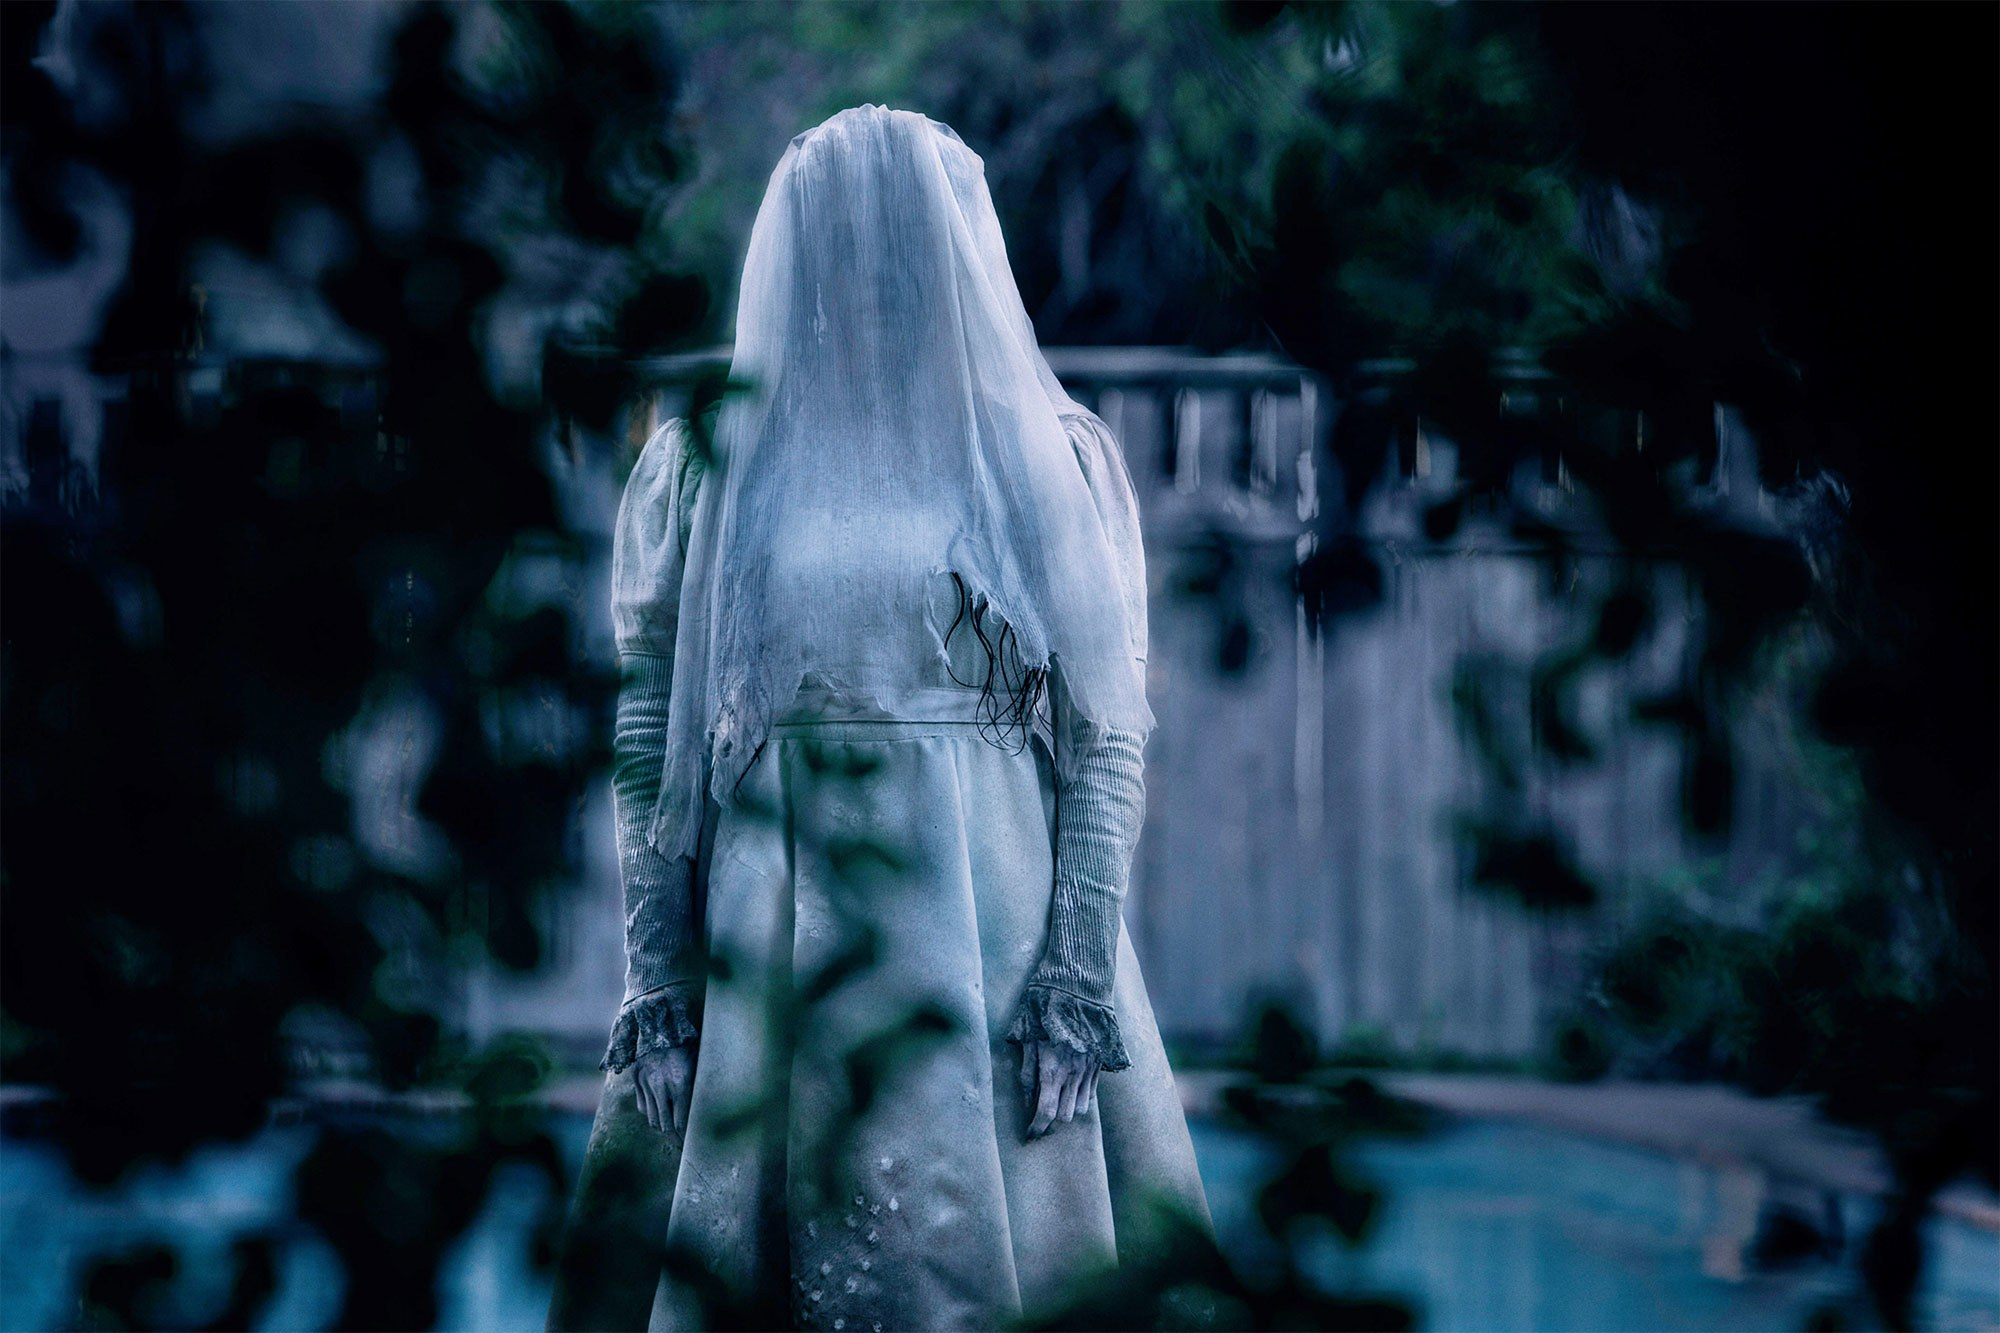 Marisol Ramirez as La Llorona the Mexican folklore figure of the crying woman in The Curse of La Llorona (2019)